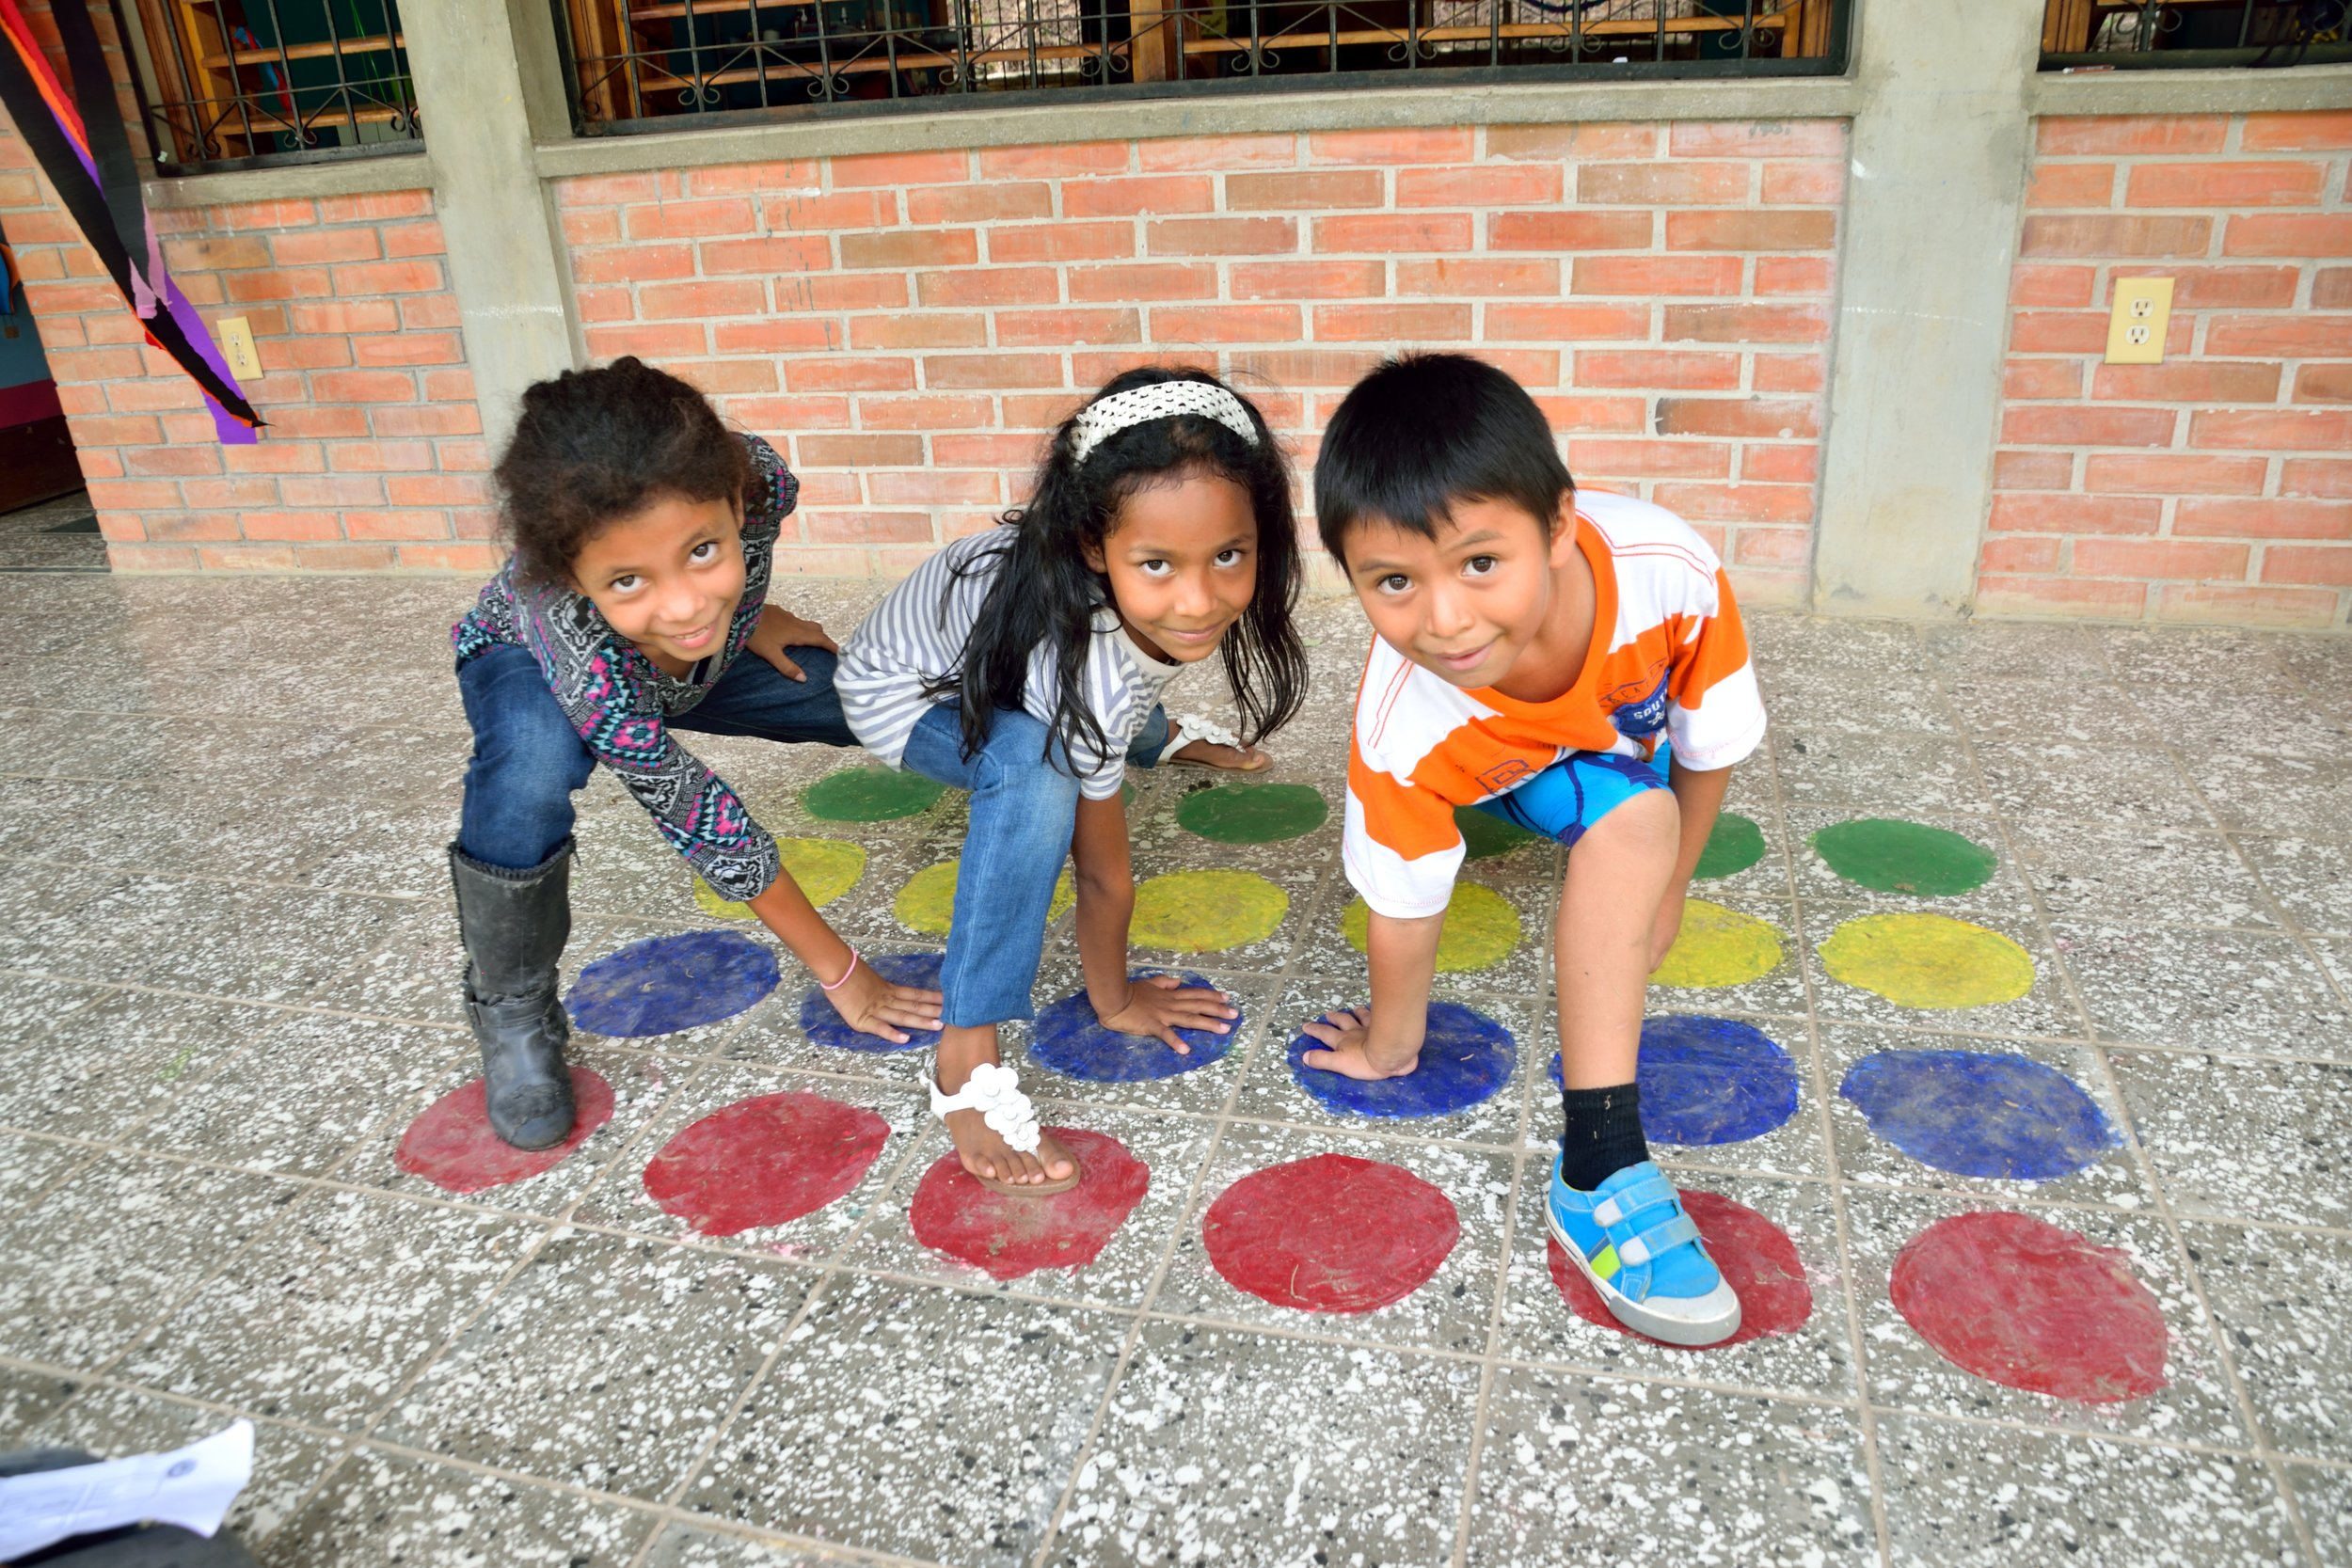 Soledad, pictured on the left, with two friends playing Twister at Día del Niño (Children's Day) this past September.